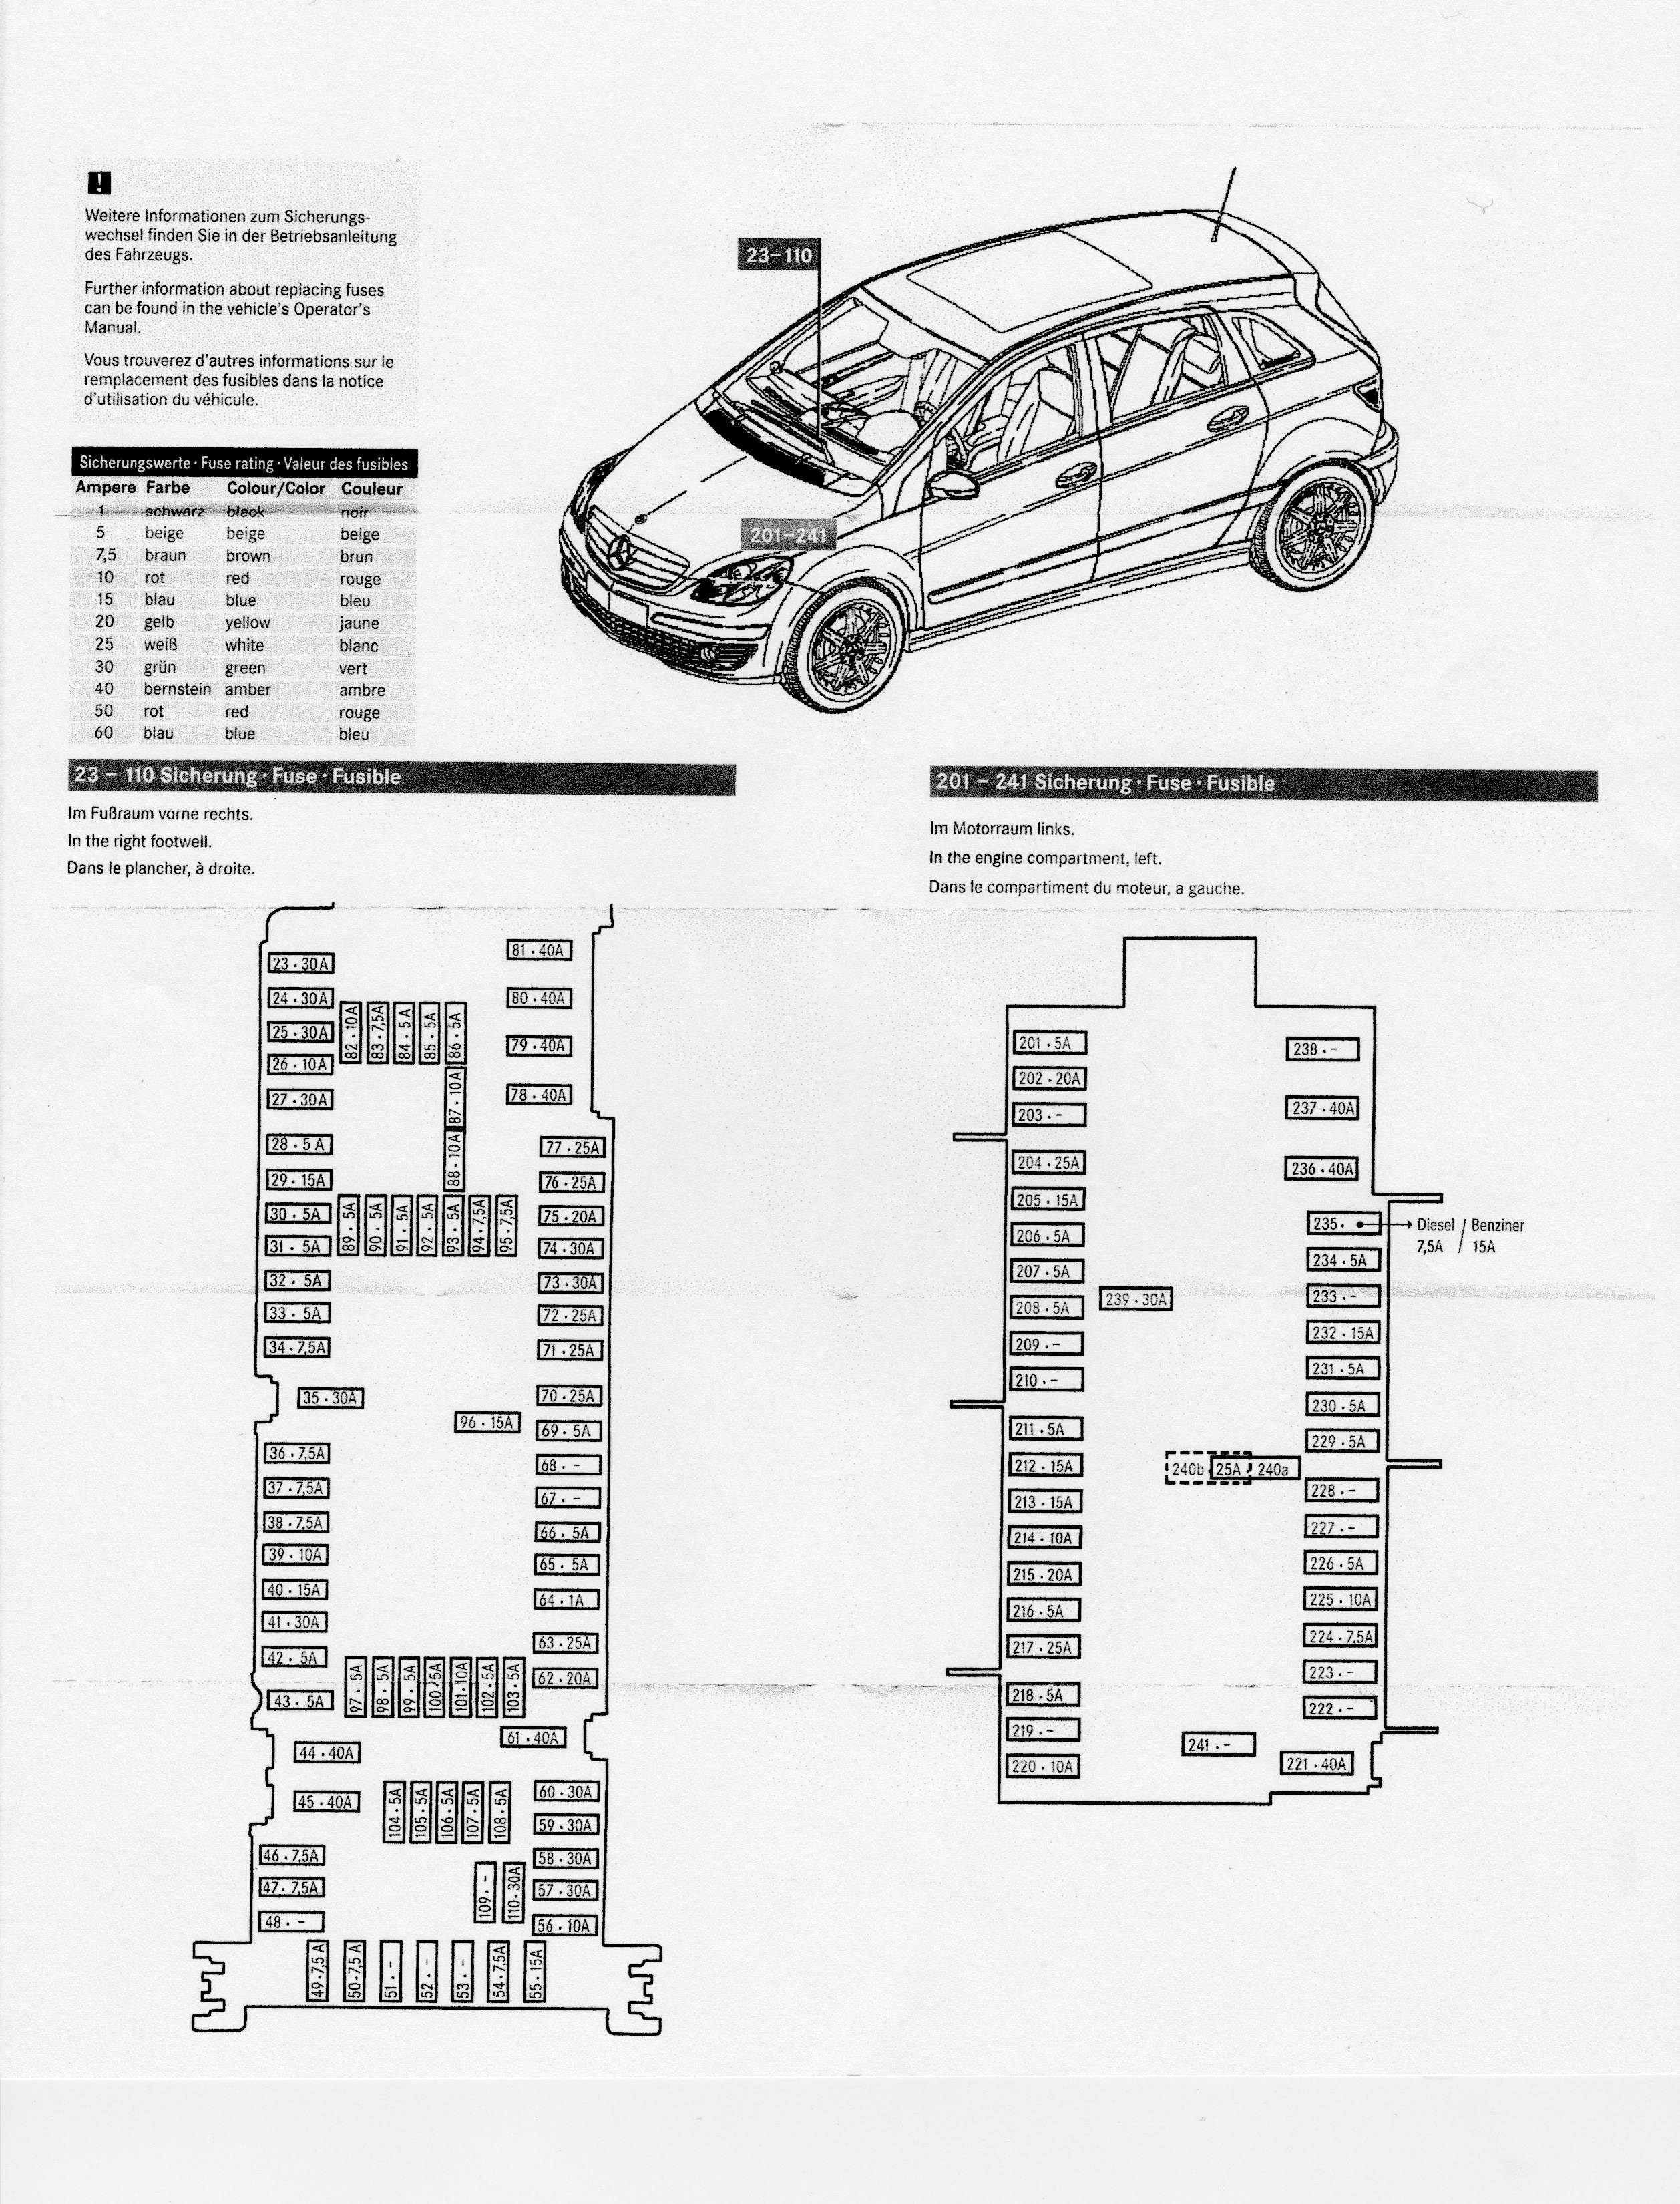 mercedes cla fuse box diagram free download  u2022 oasis